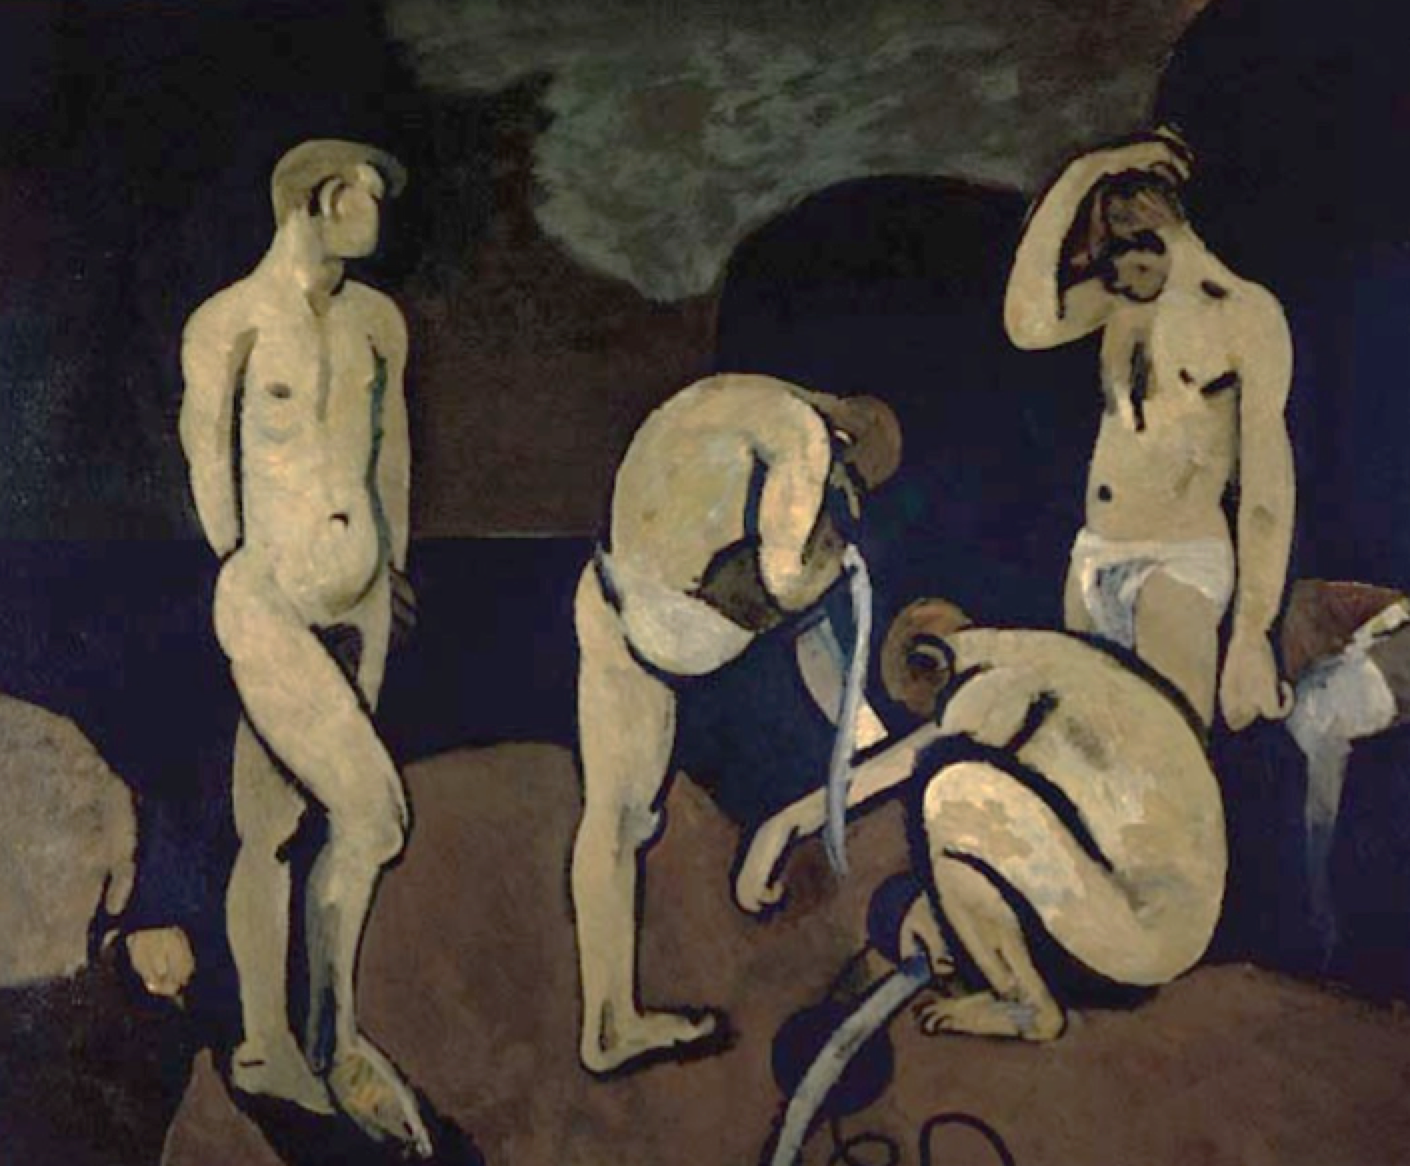 SECOND ASSEMBLY OF FIGURES, 1953